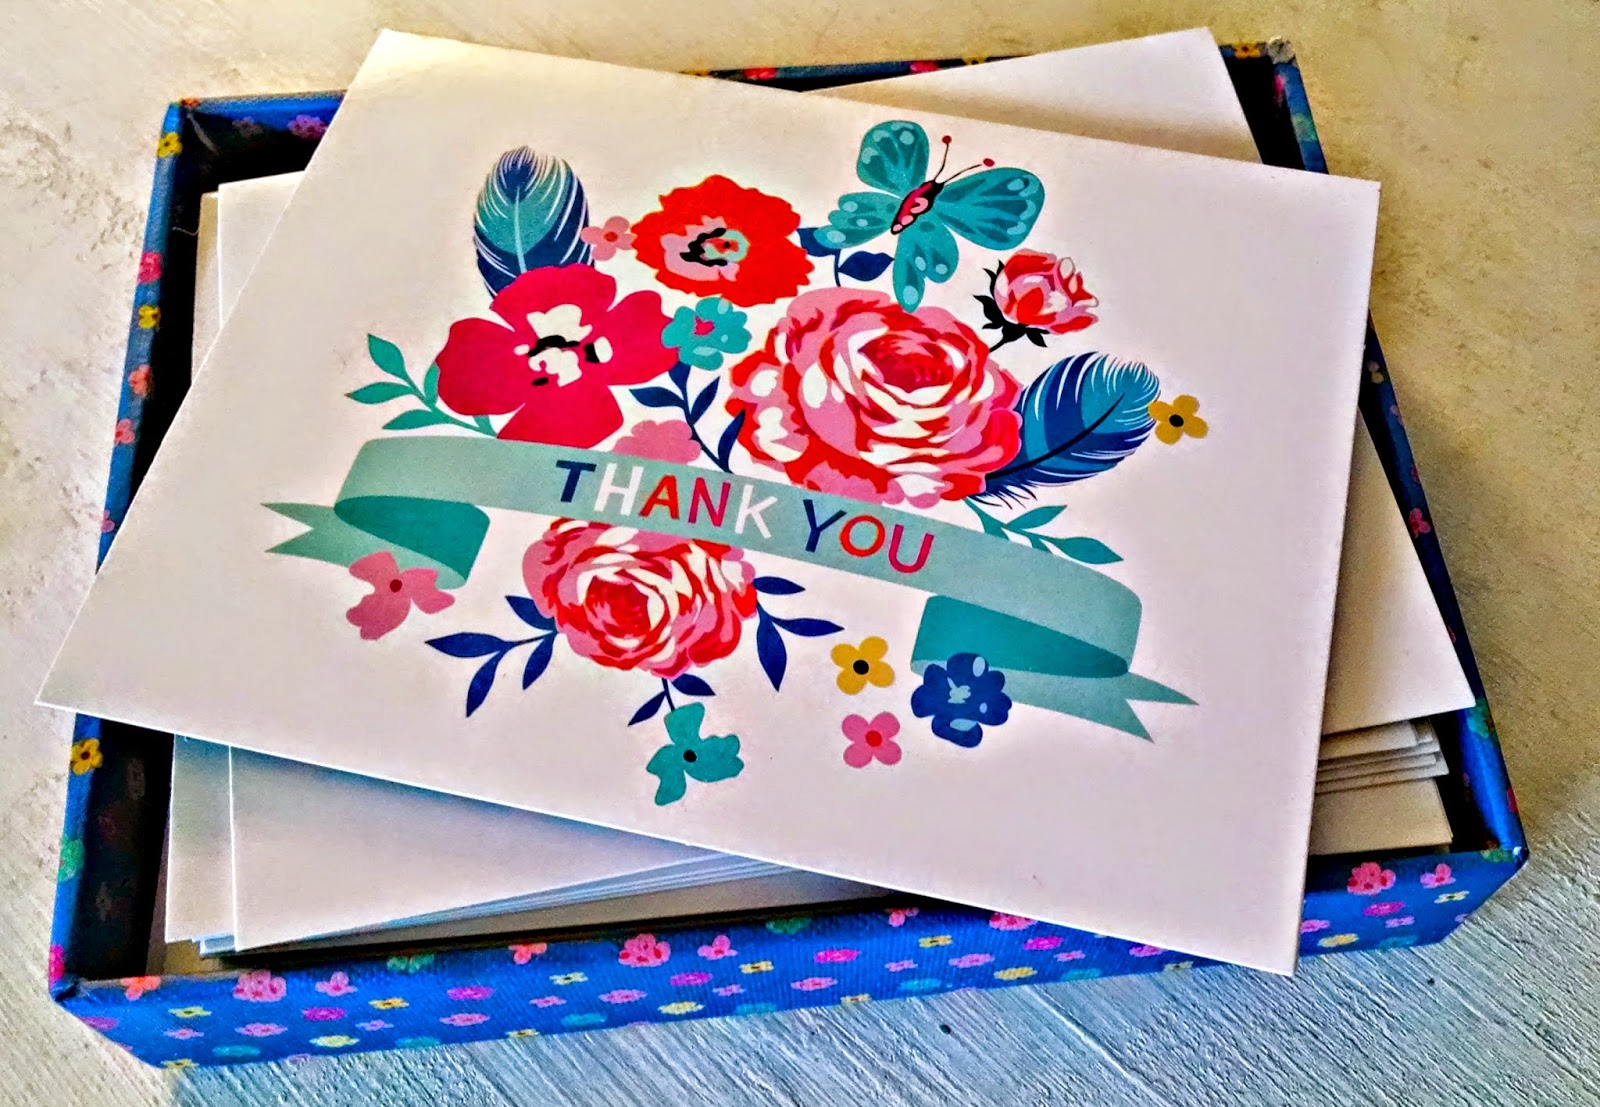 Thank you, cards, floral, stationary, writing, Ray of Sunshine, cute